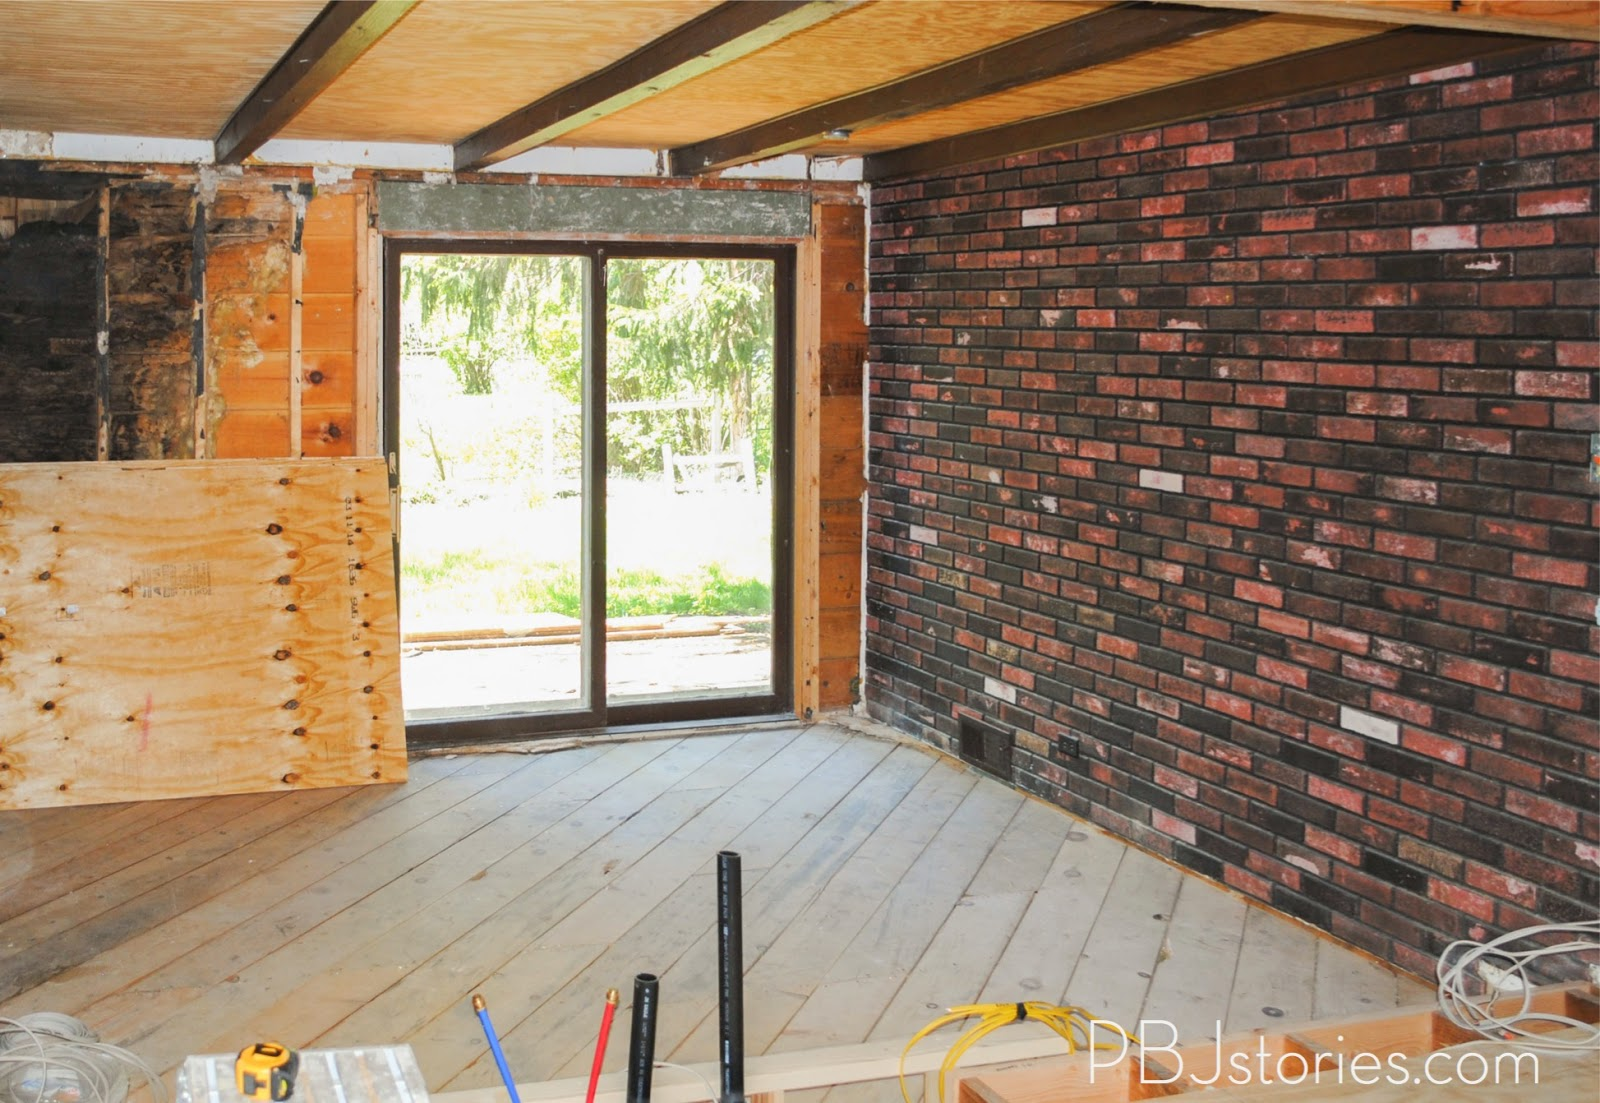 How To Paint Bricks Interior. pbjstories how to paint an